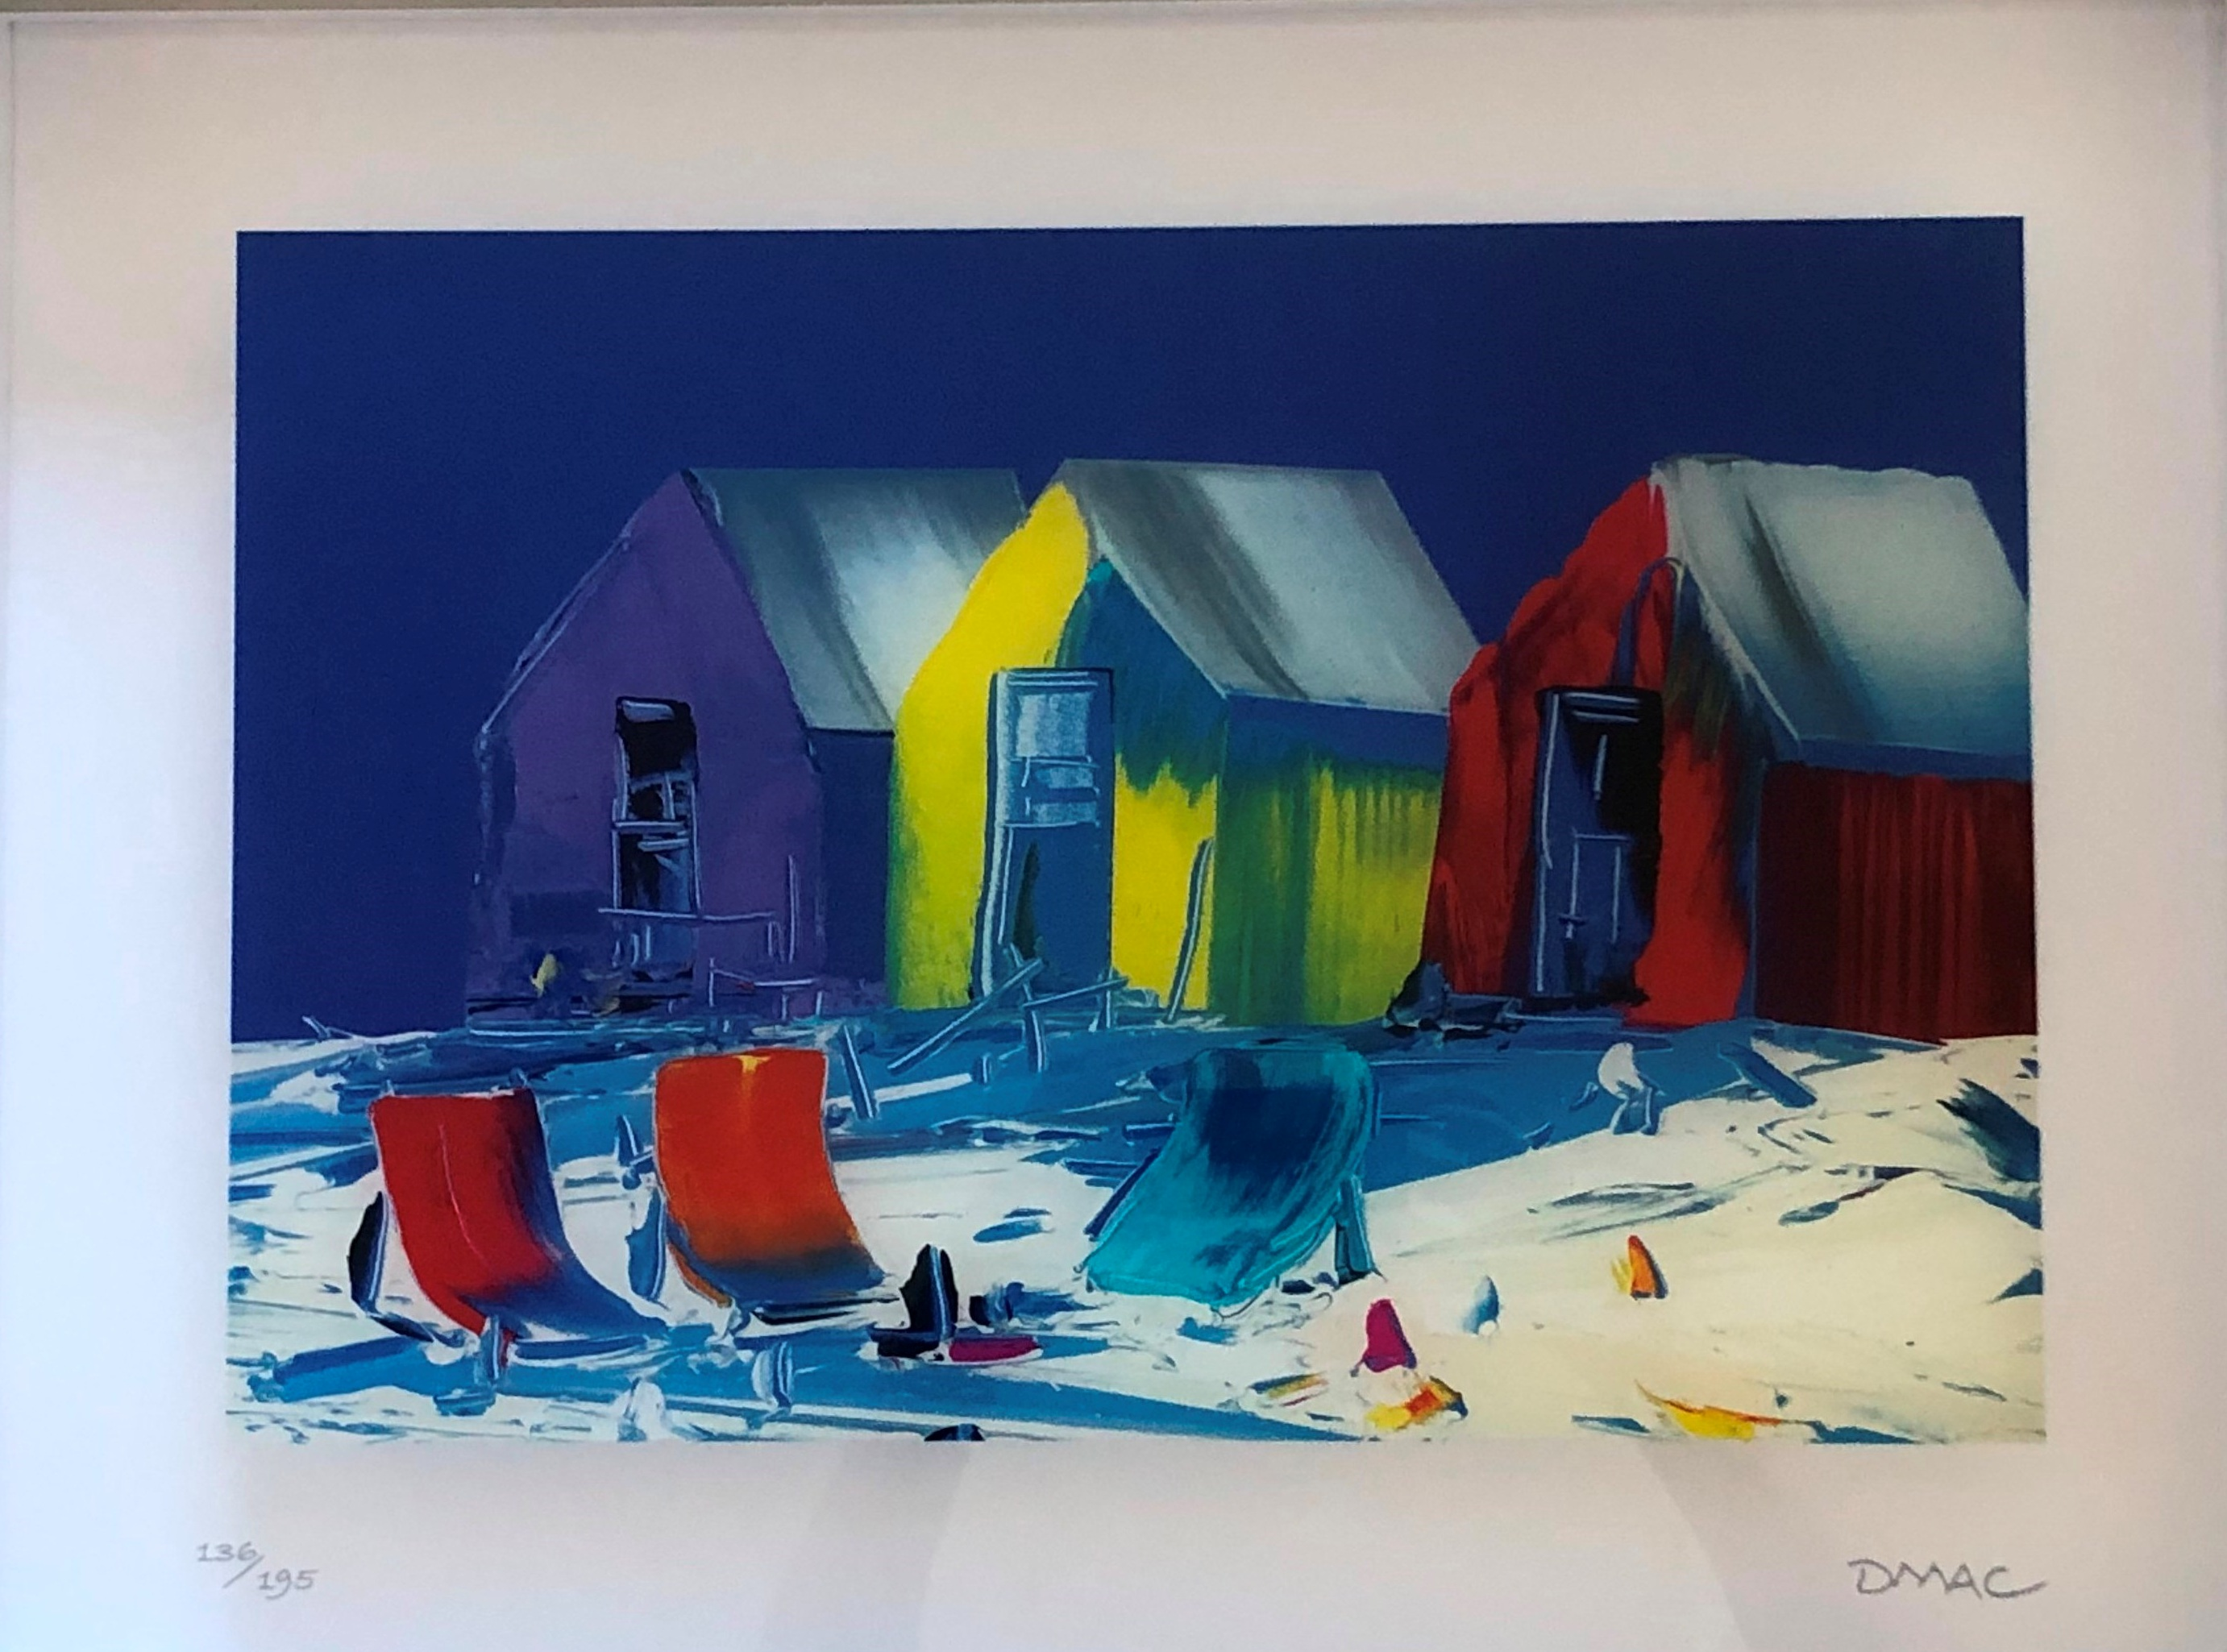 Shades of Life II artwork by Duncan MacGregor - art listed for sale on Artplode